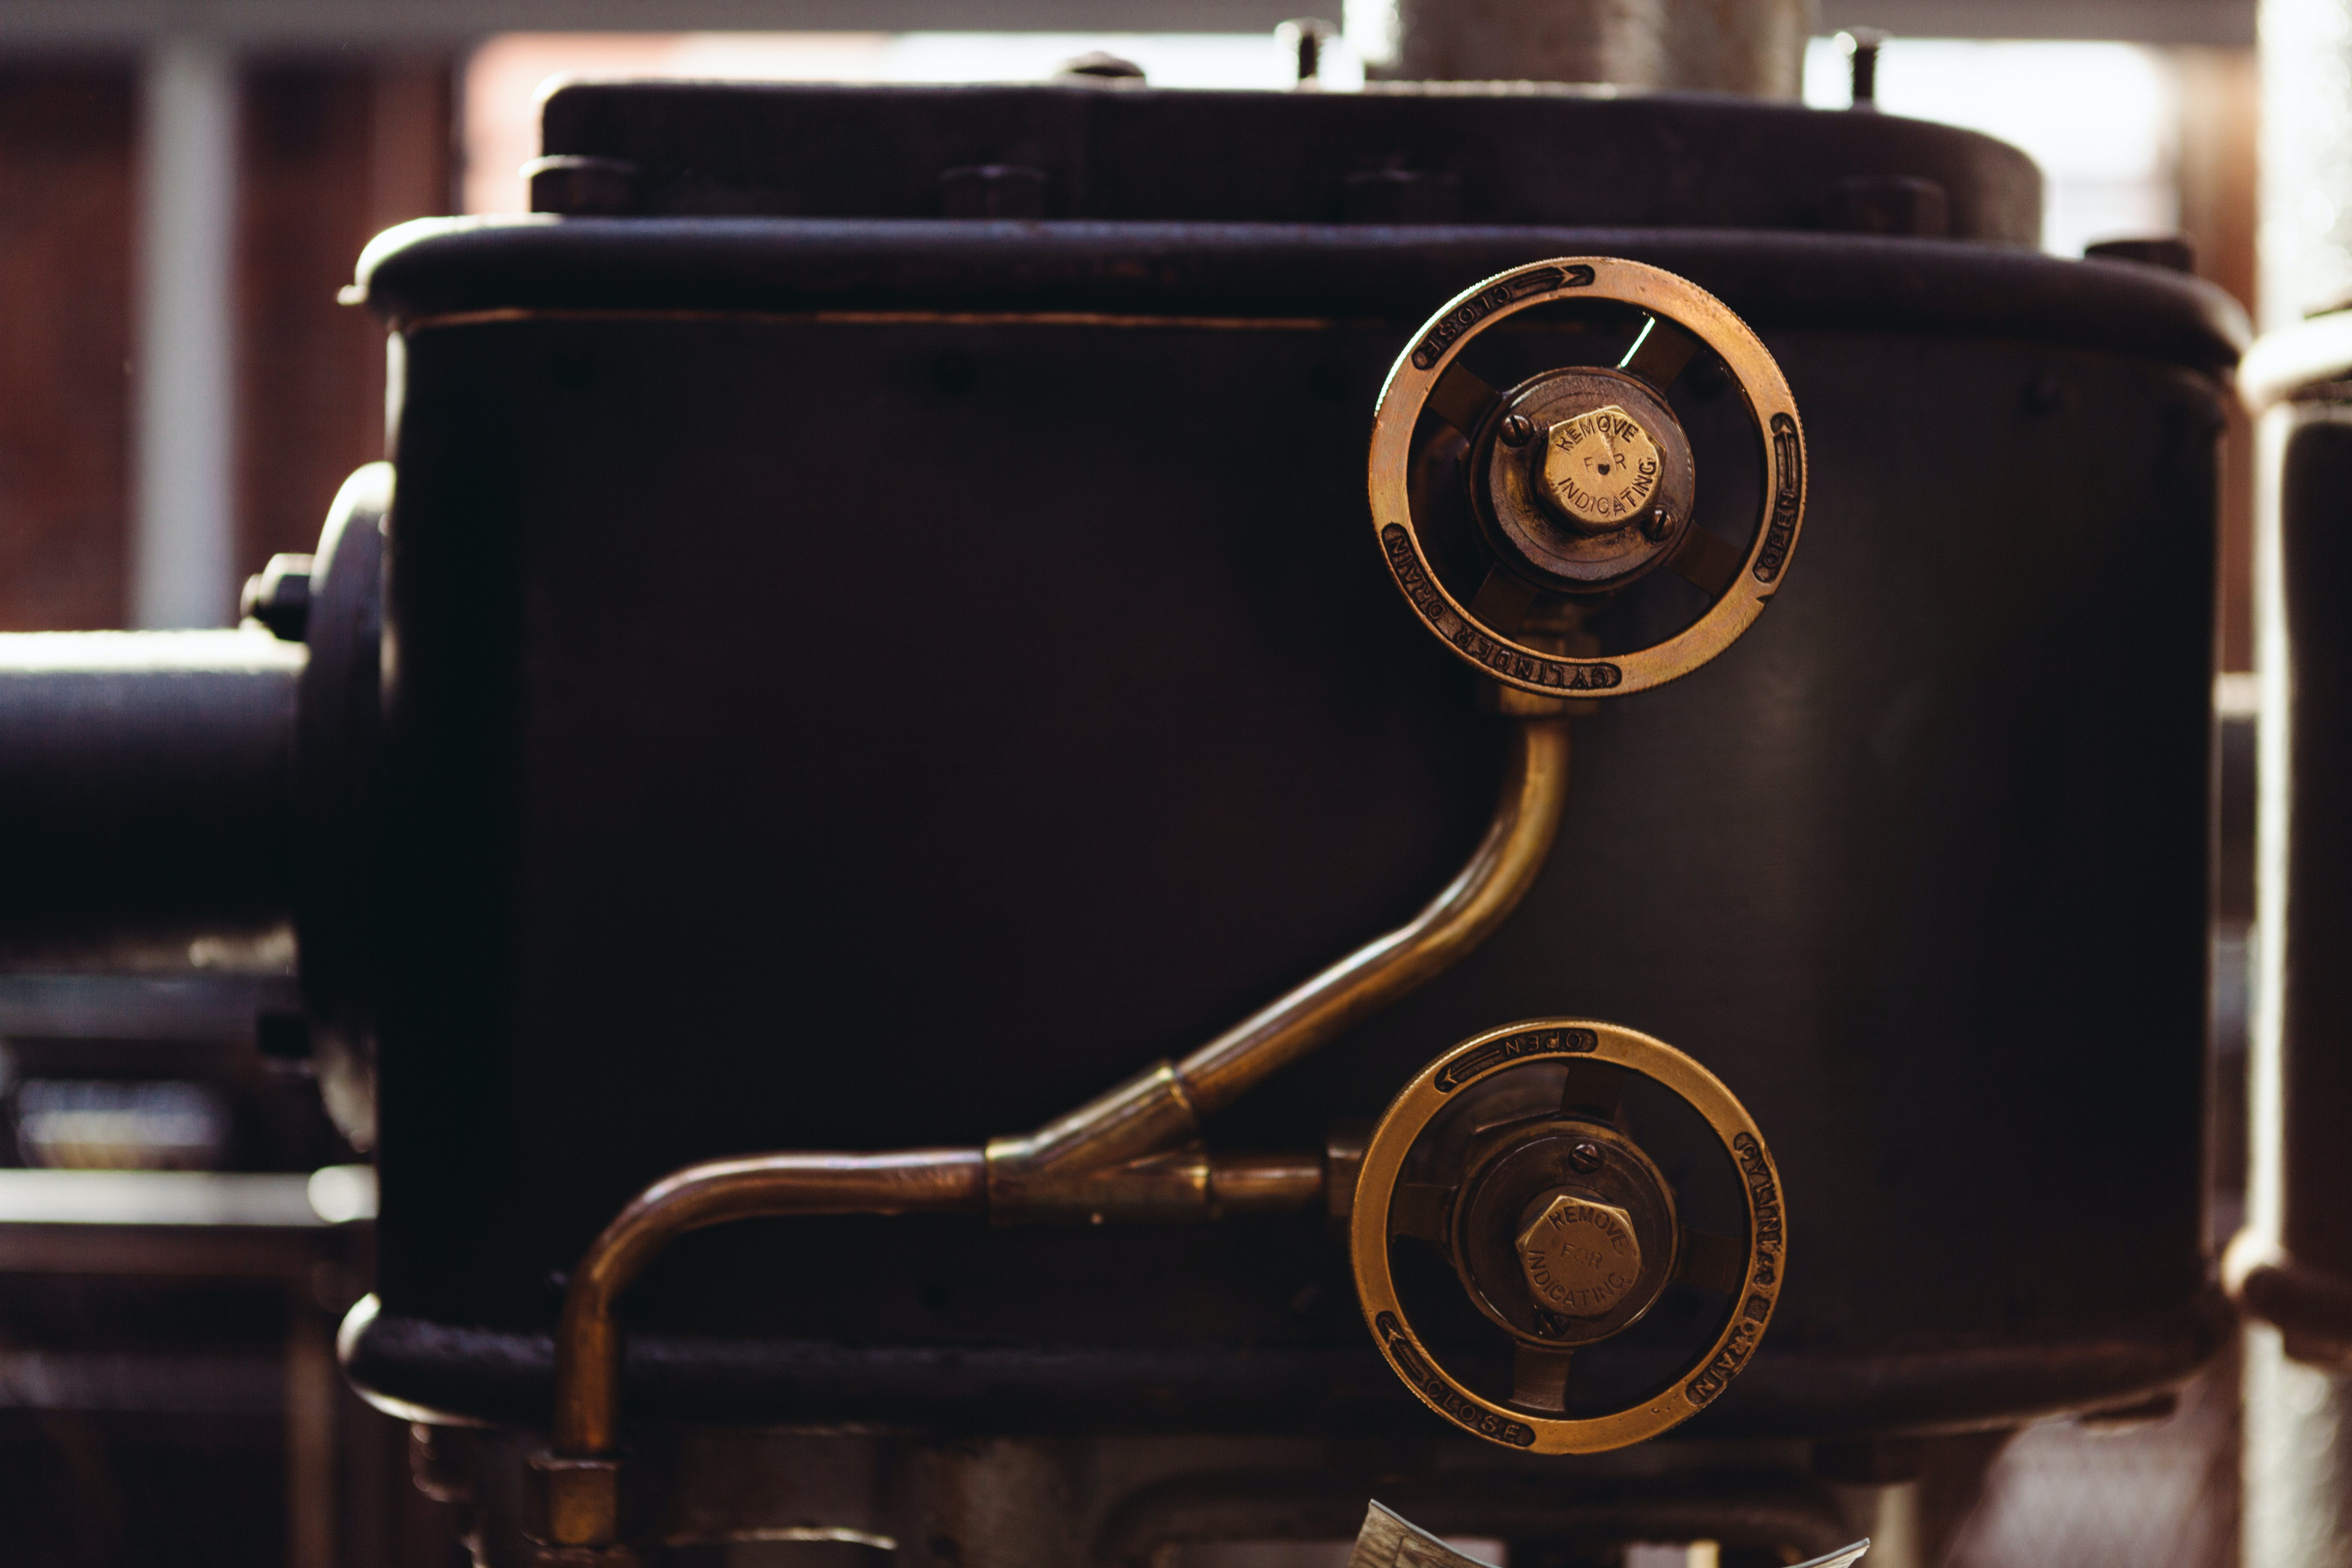 Closeup Photo of Black and Gray Home Appliance